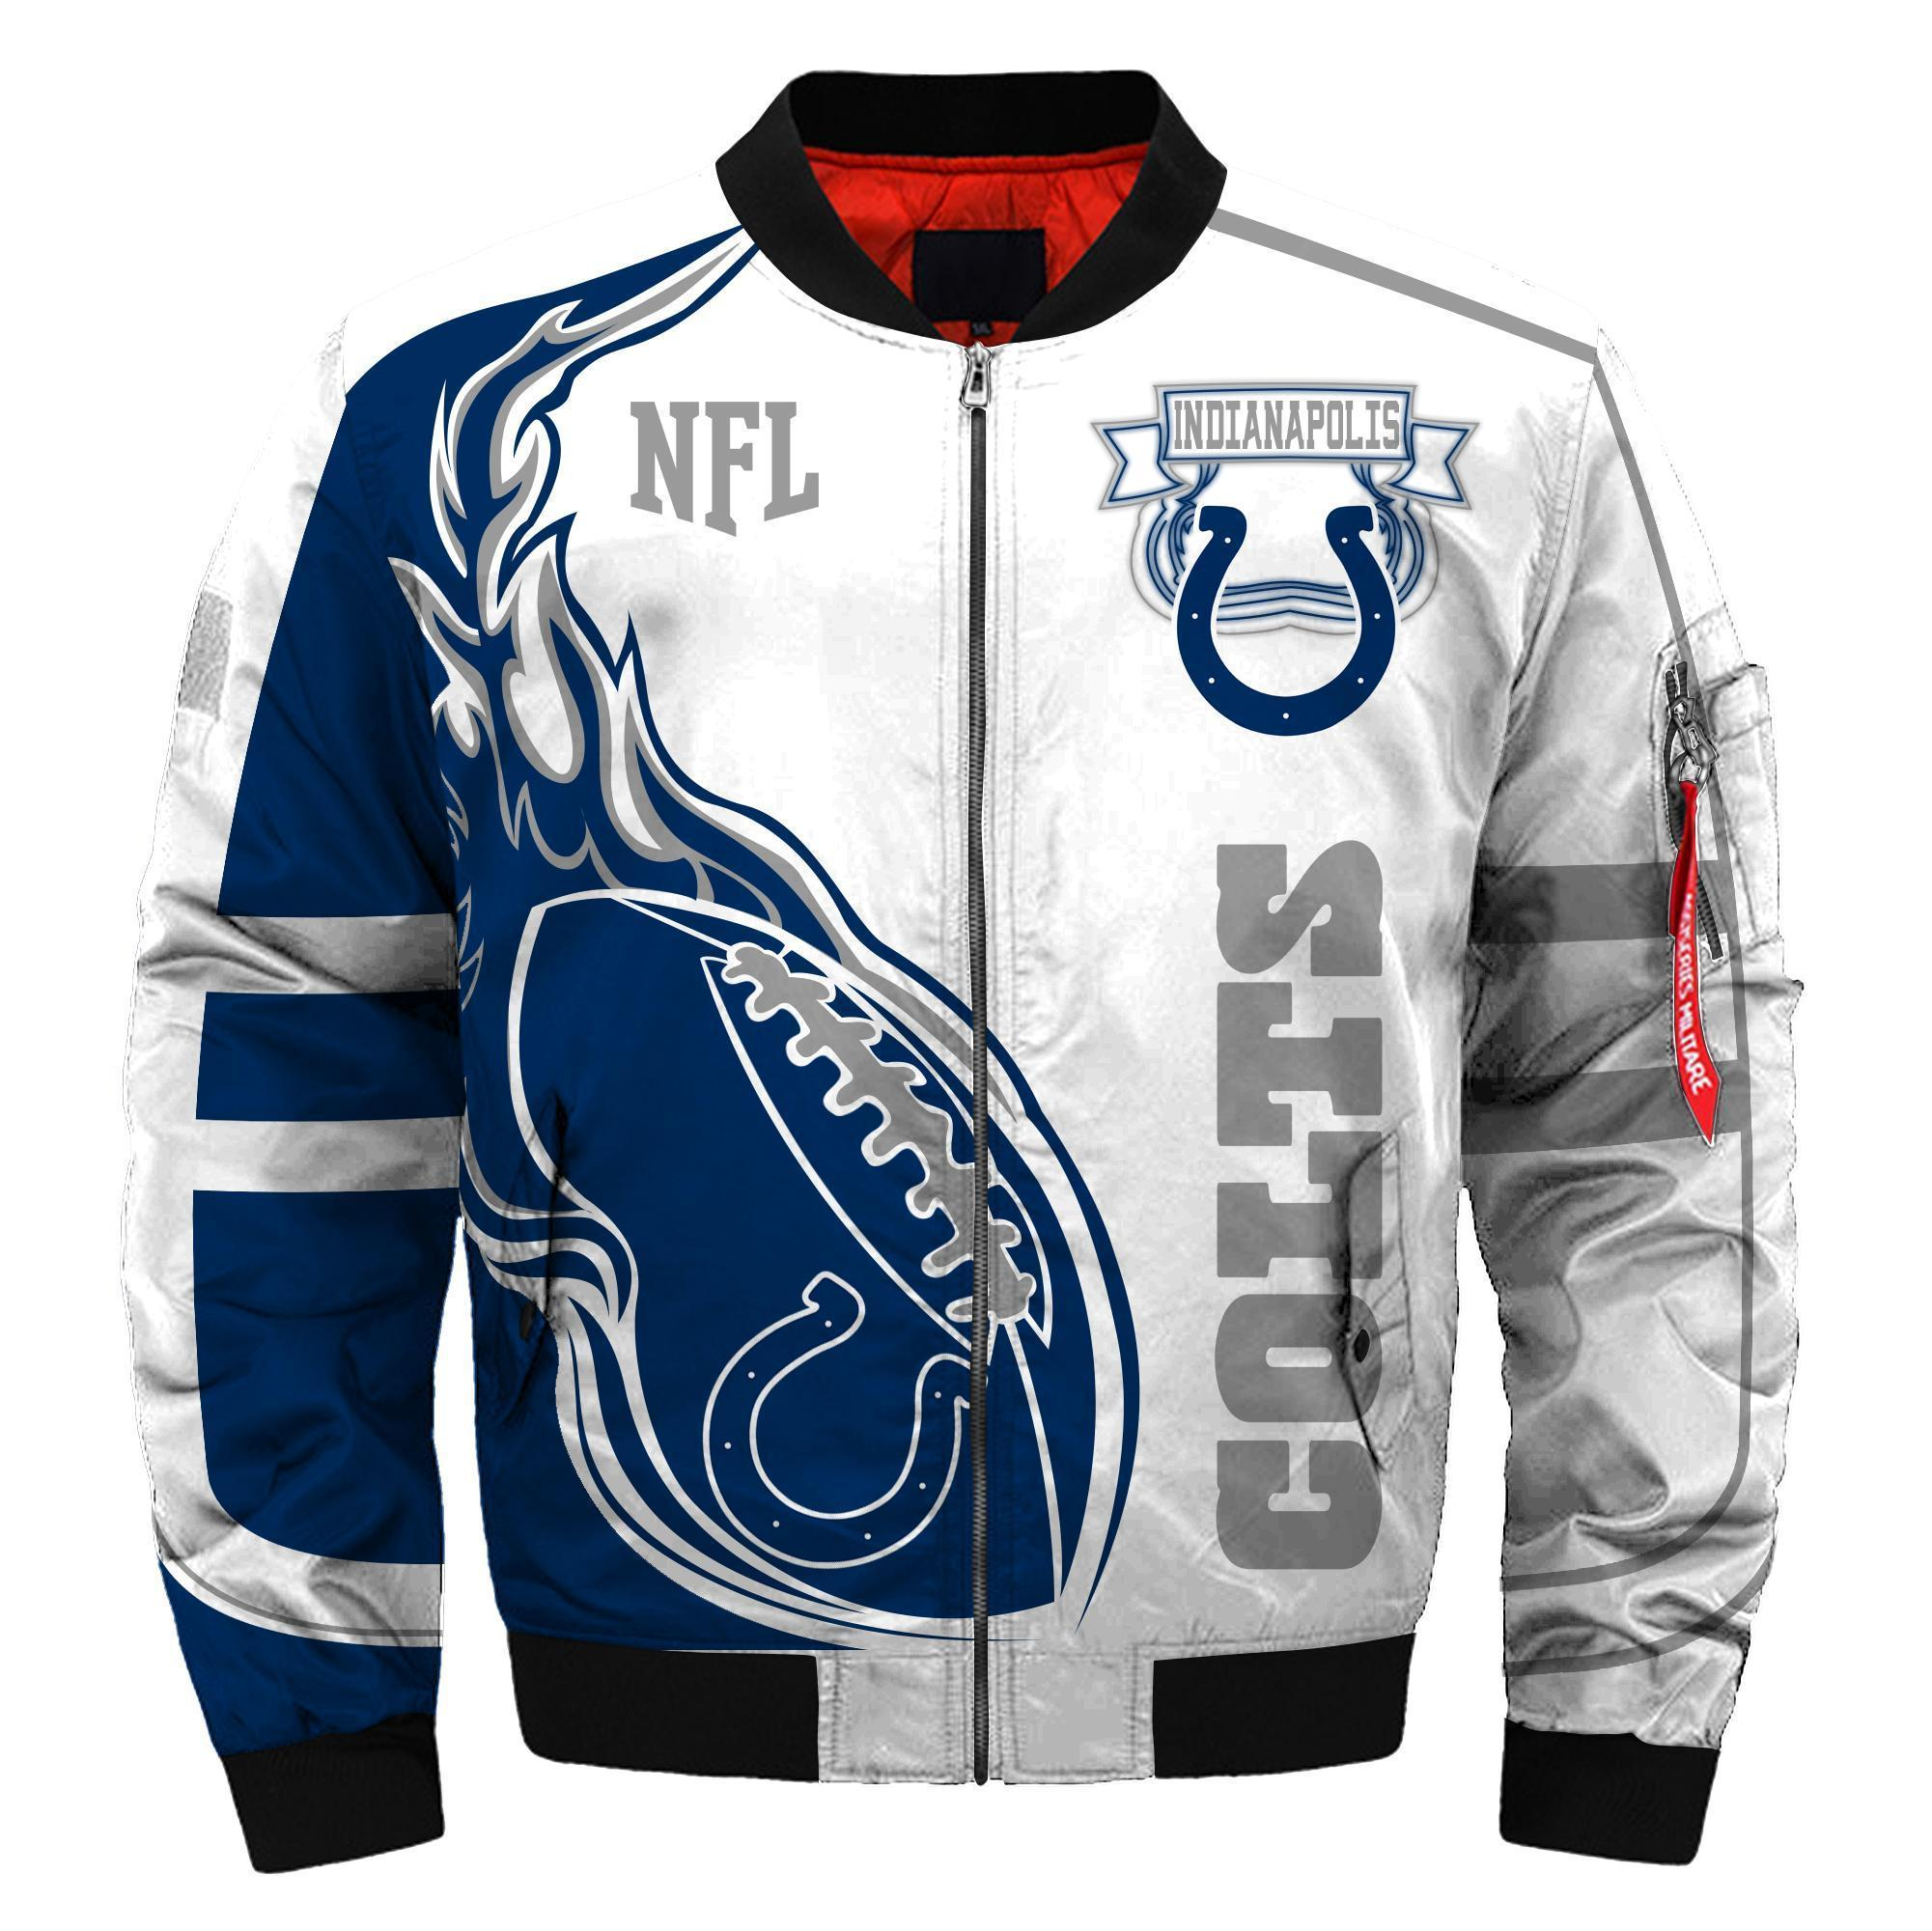 010 Nfl Indianapolis Colts Custom North Face Winter Jacket Bomer High Quality Plus Size Jacket